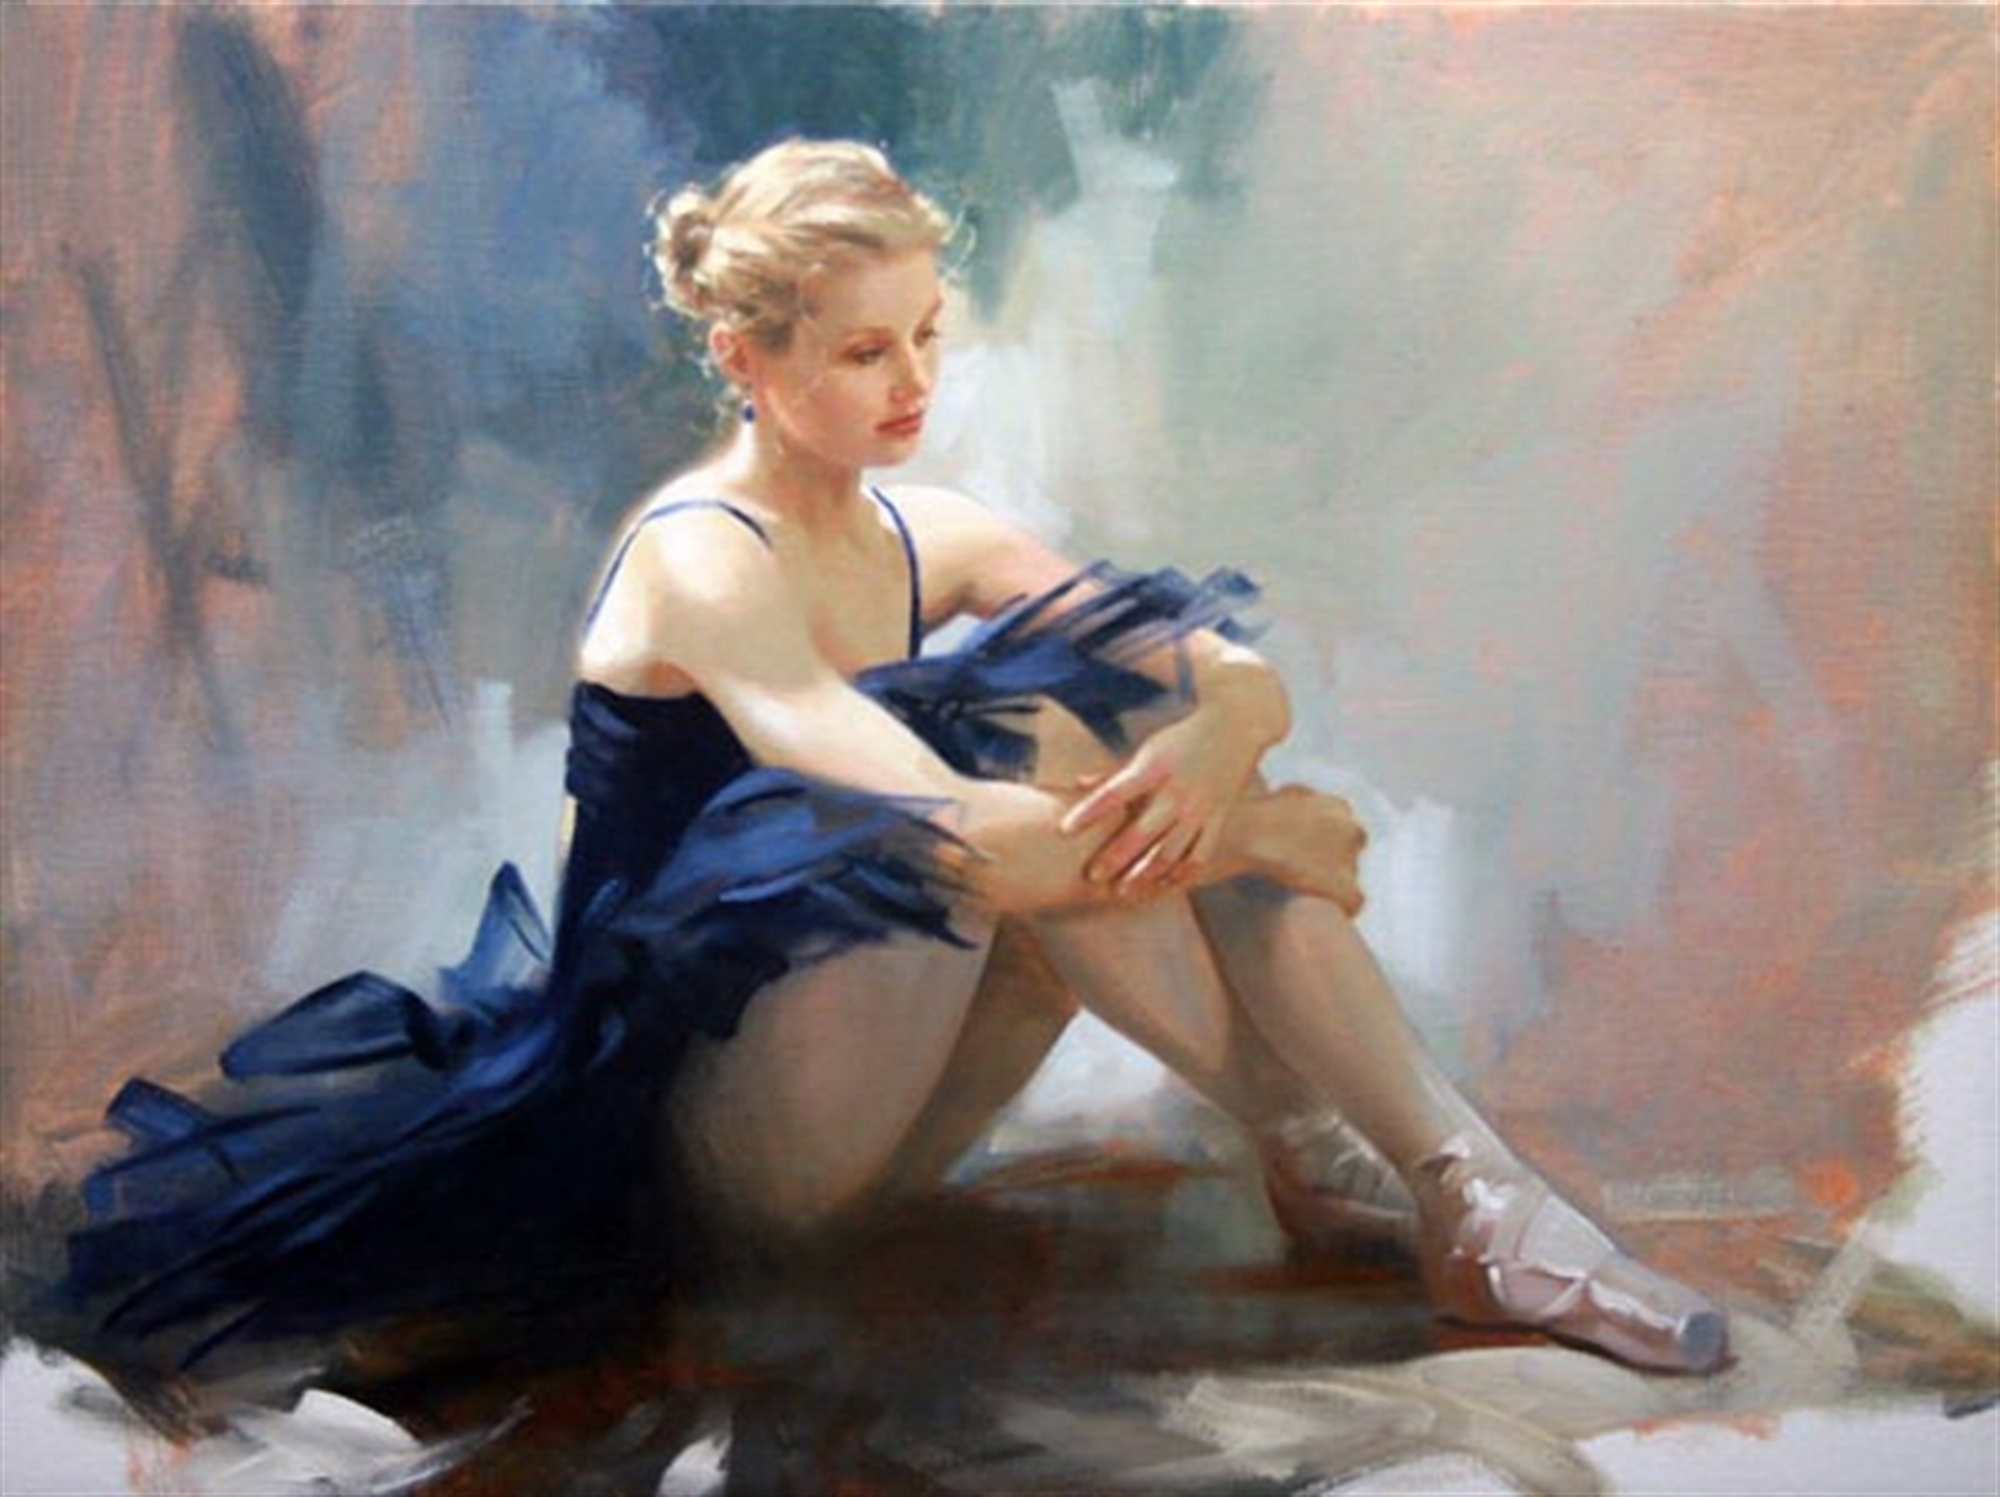 Ballet Dreams by Richard Johnson